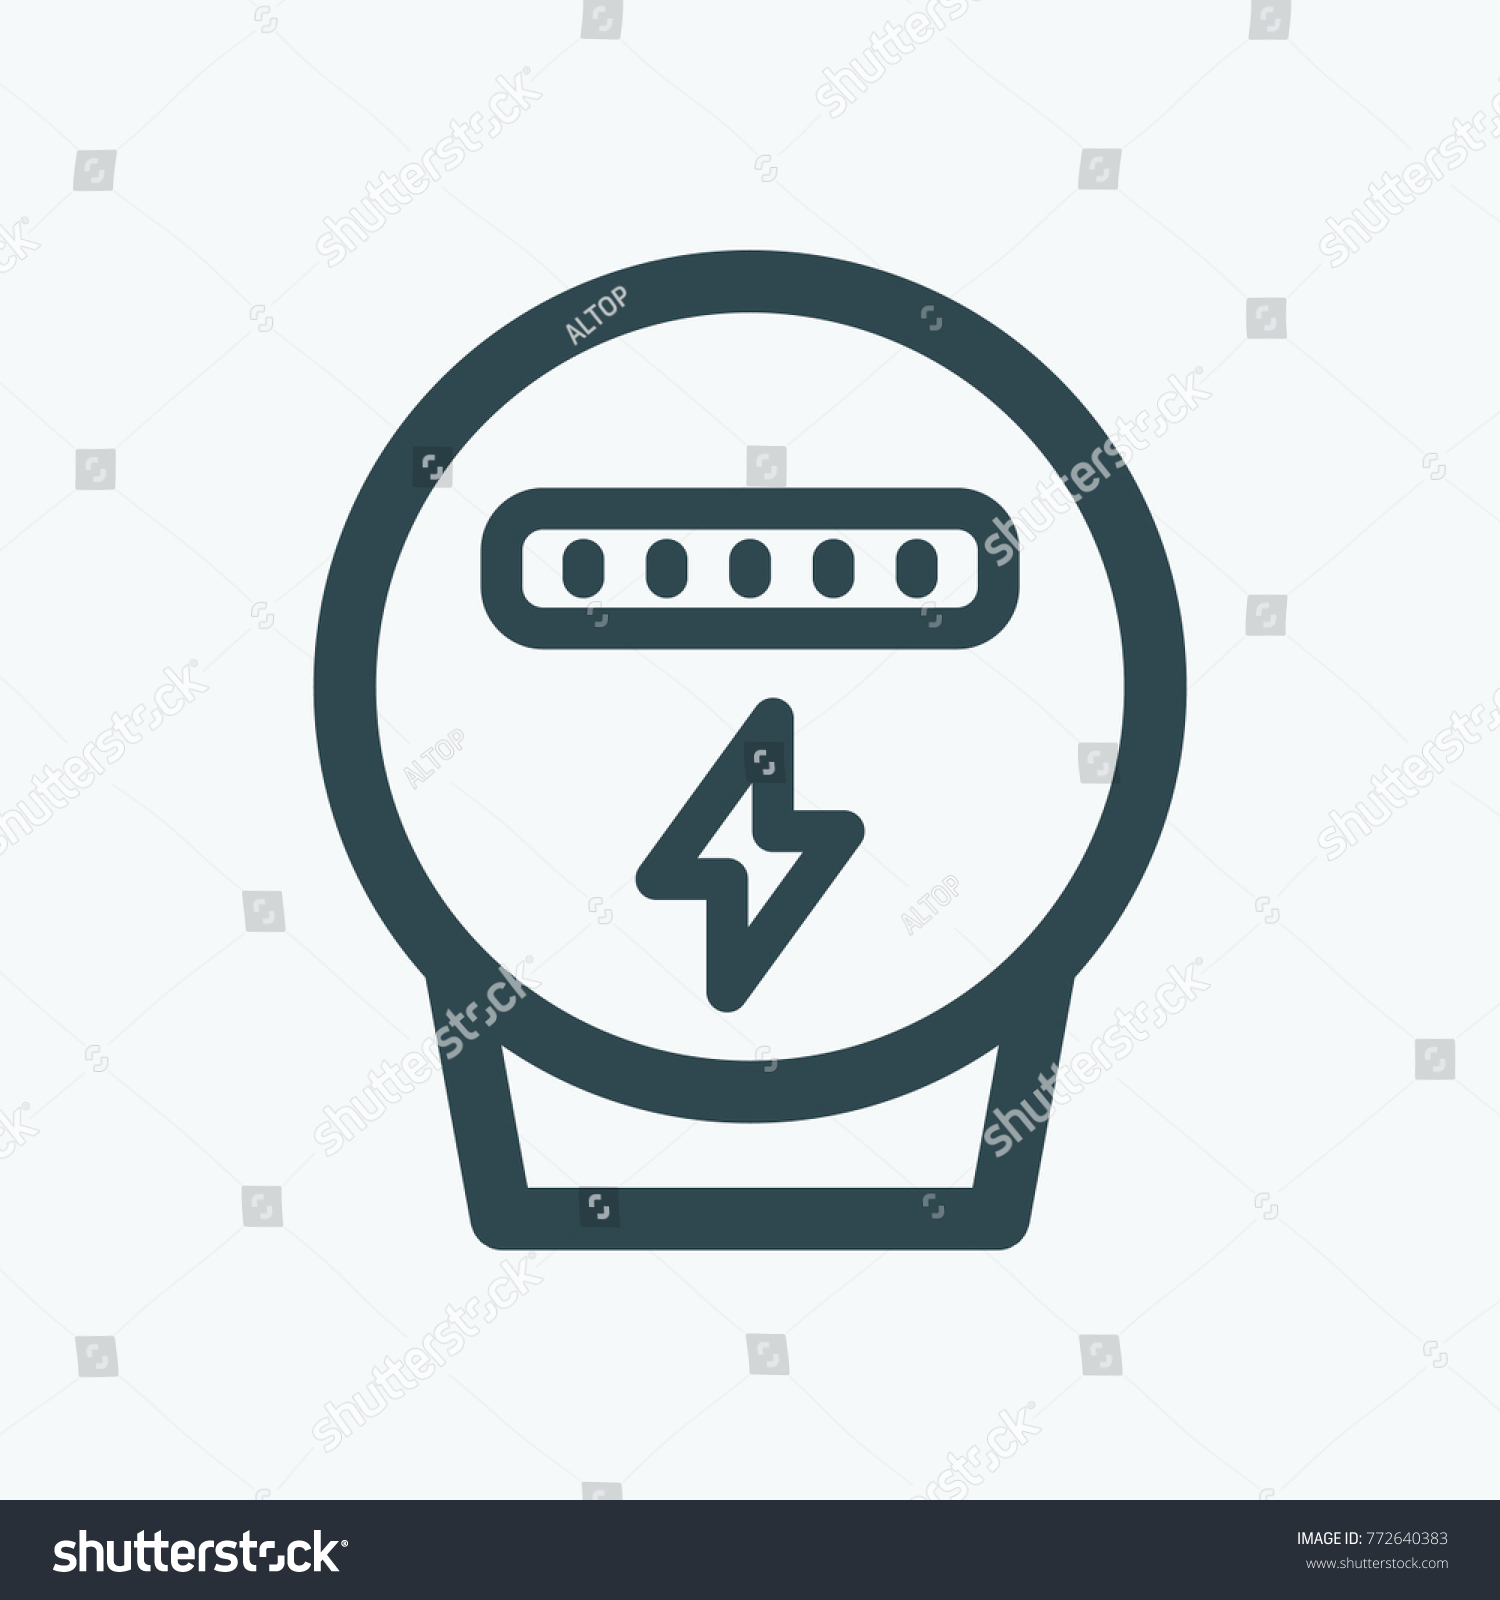 Electric Meter Electricity Meter Vector Icon Stock Photo (Photo ...